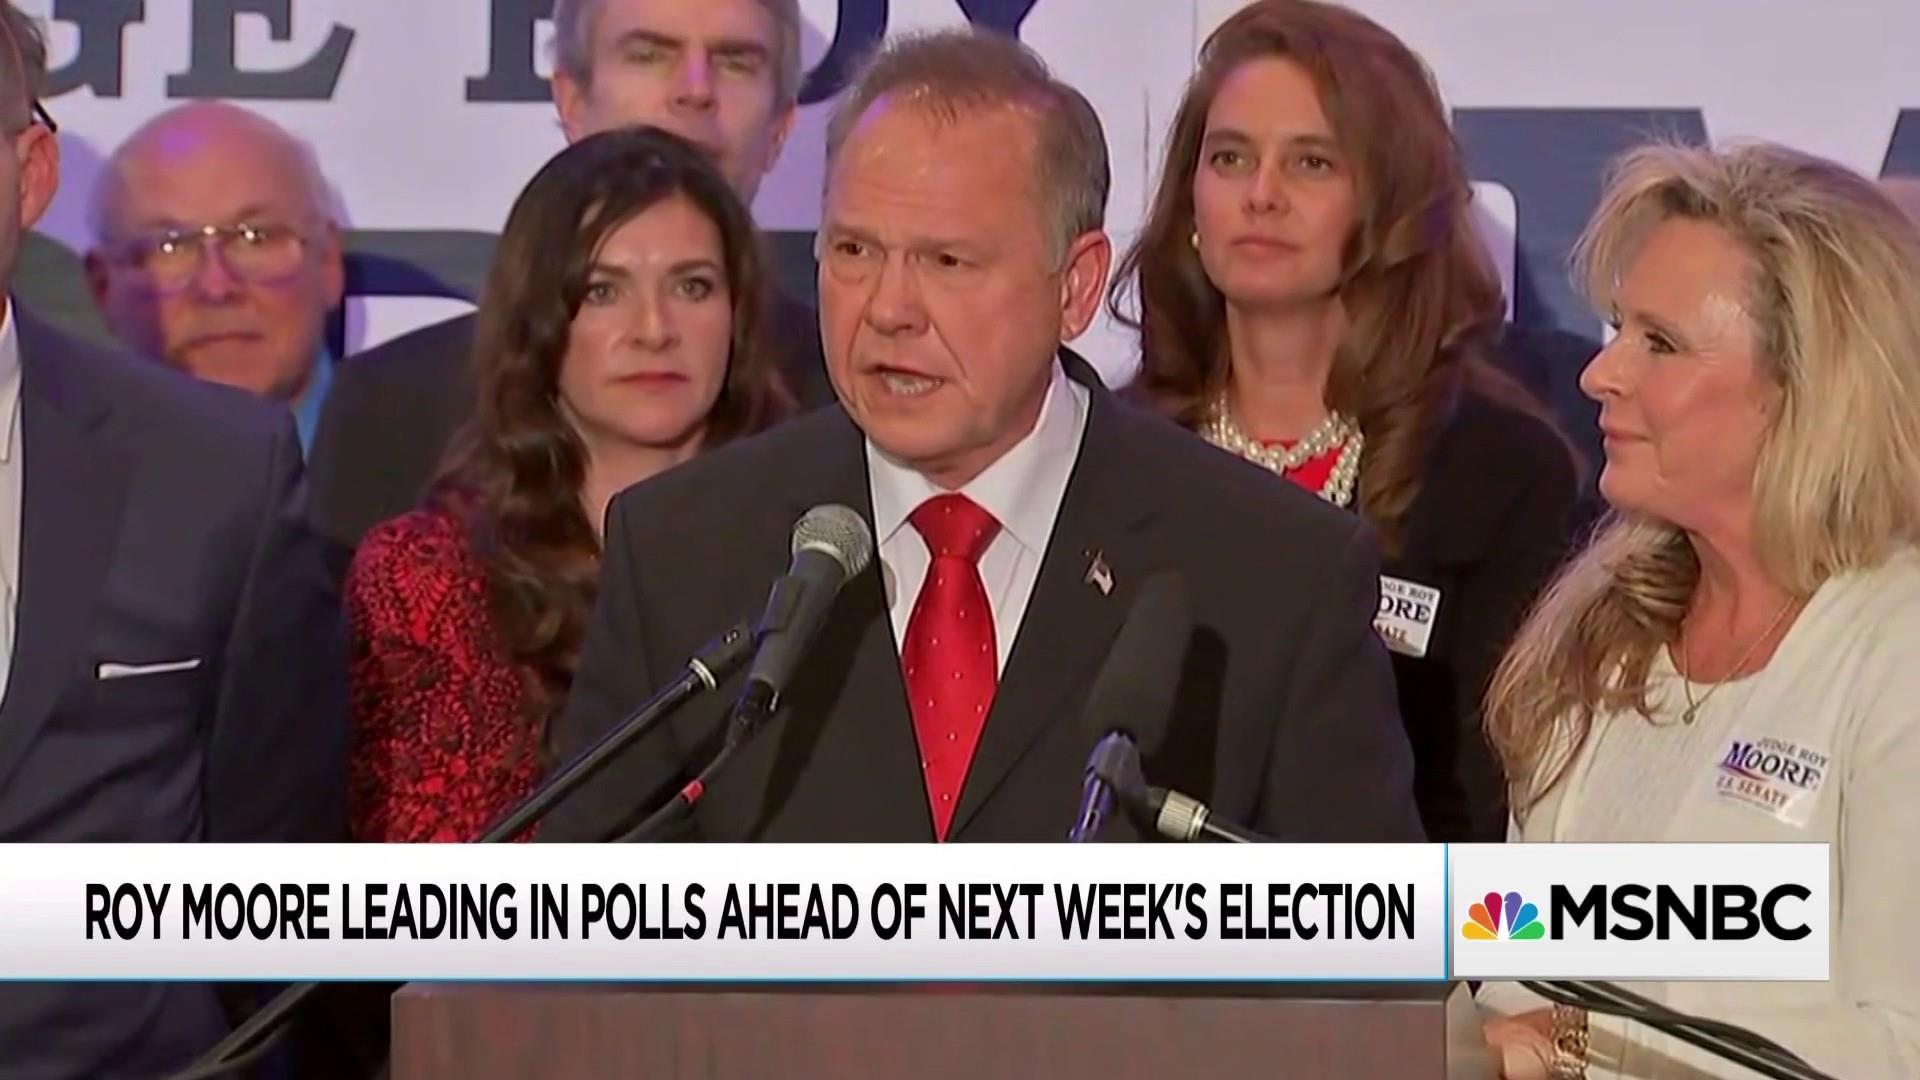 RNC quietly slips back into supporting Moore